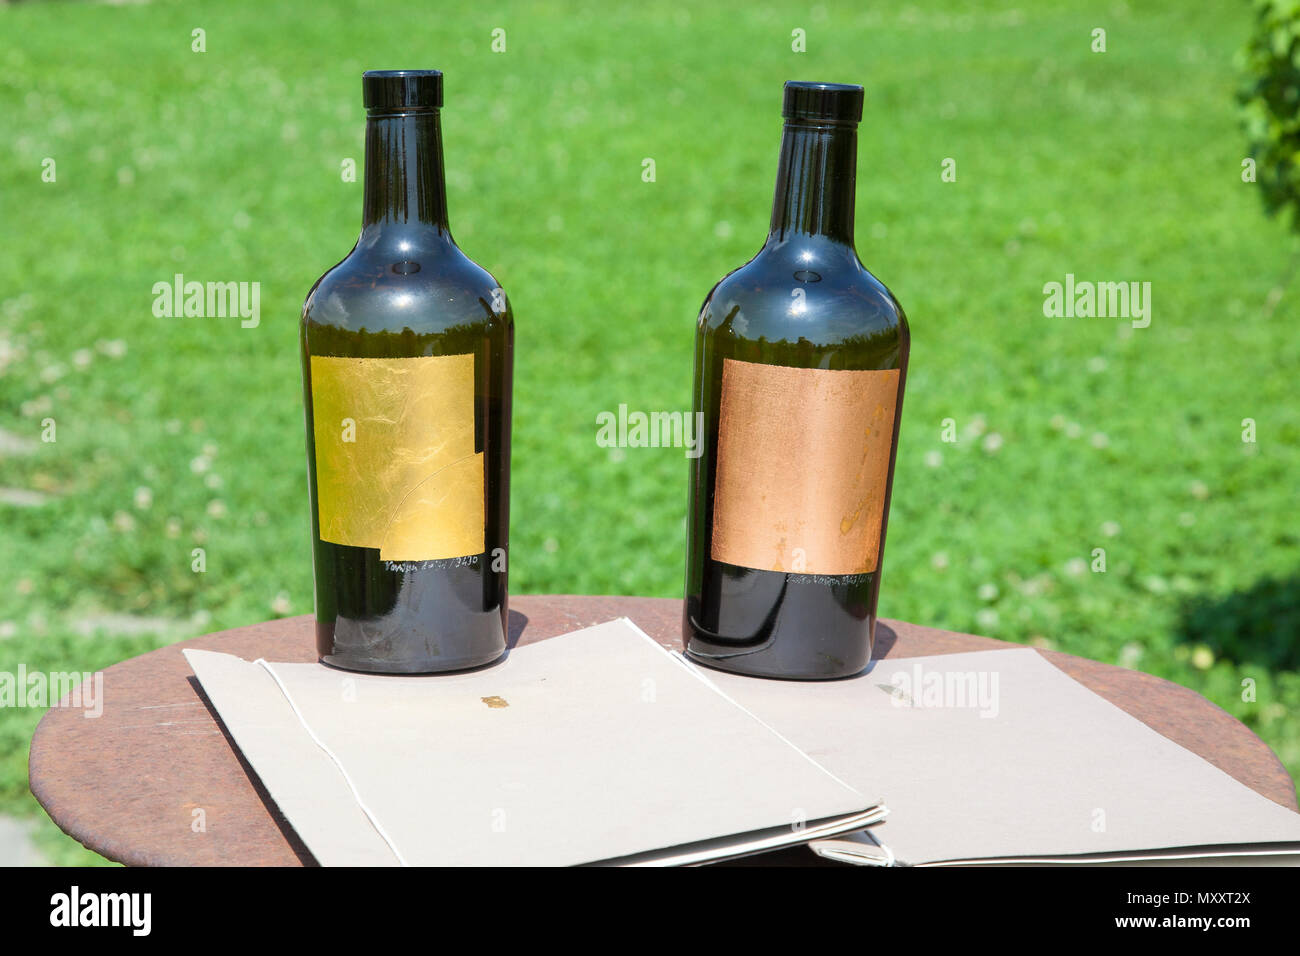 Venissa wine bottles at their winery on Mazzorbo Island, Venice, Veneto, Italy. Made from Murano glass with hand beaten Venetian gold leaf - Stock Image